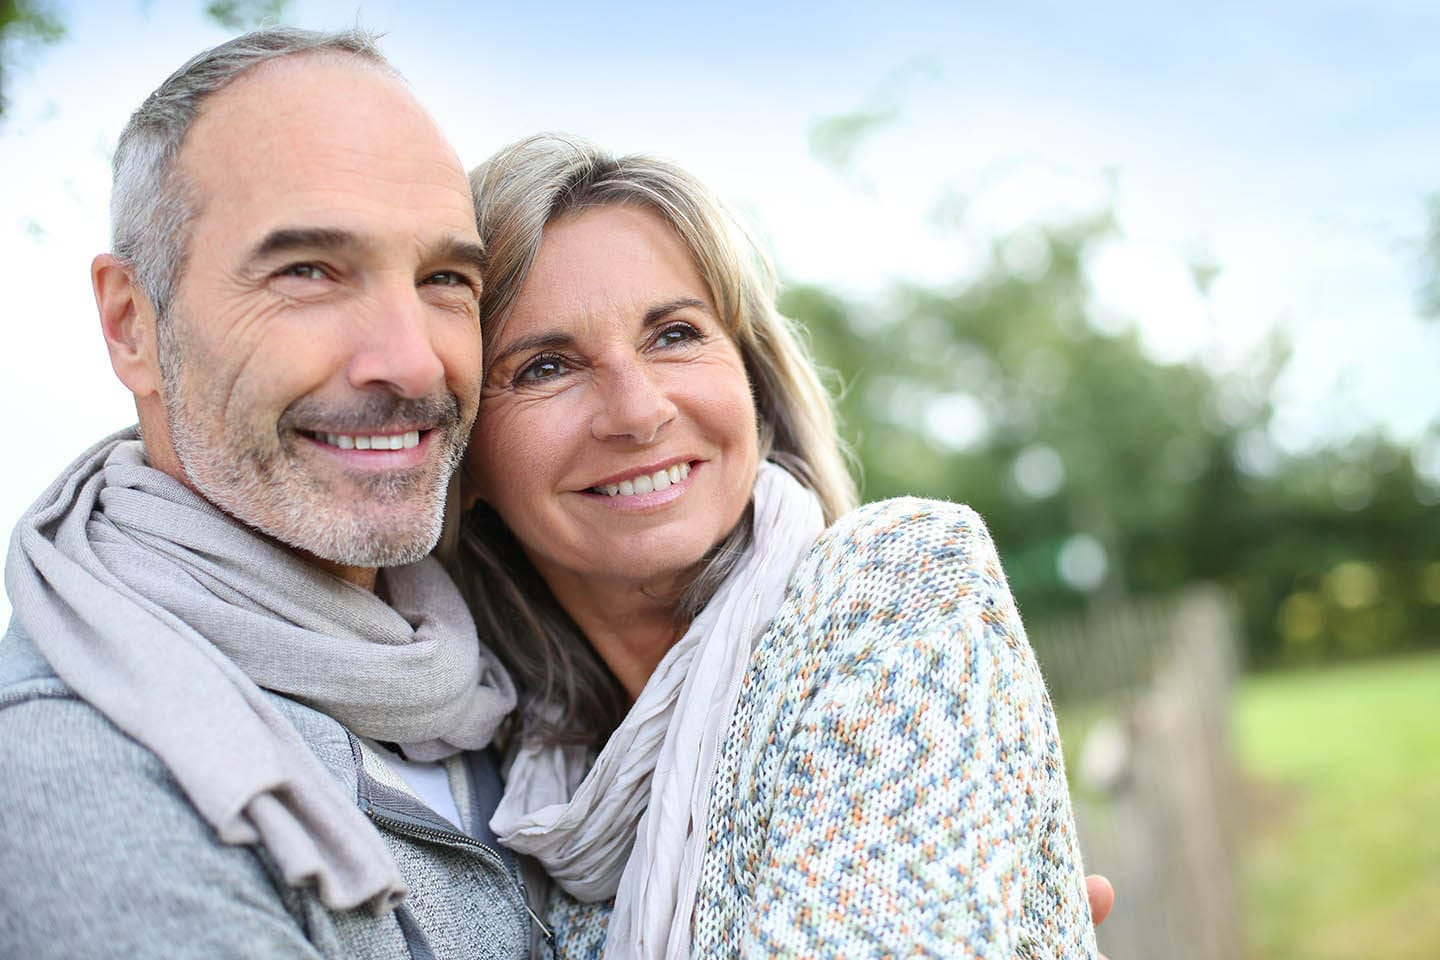 A couple with dentures smiling